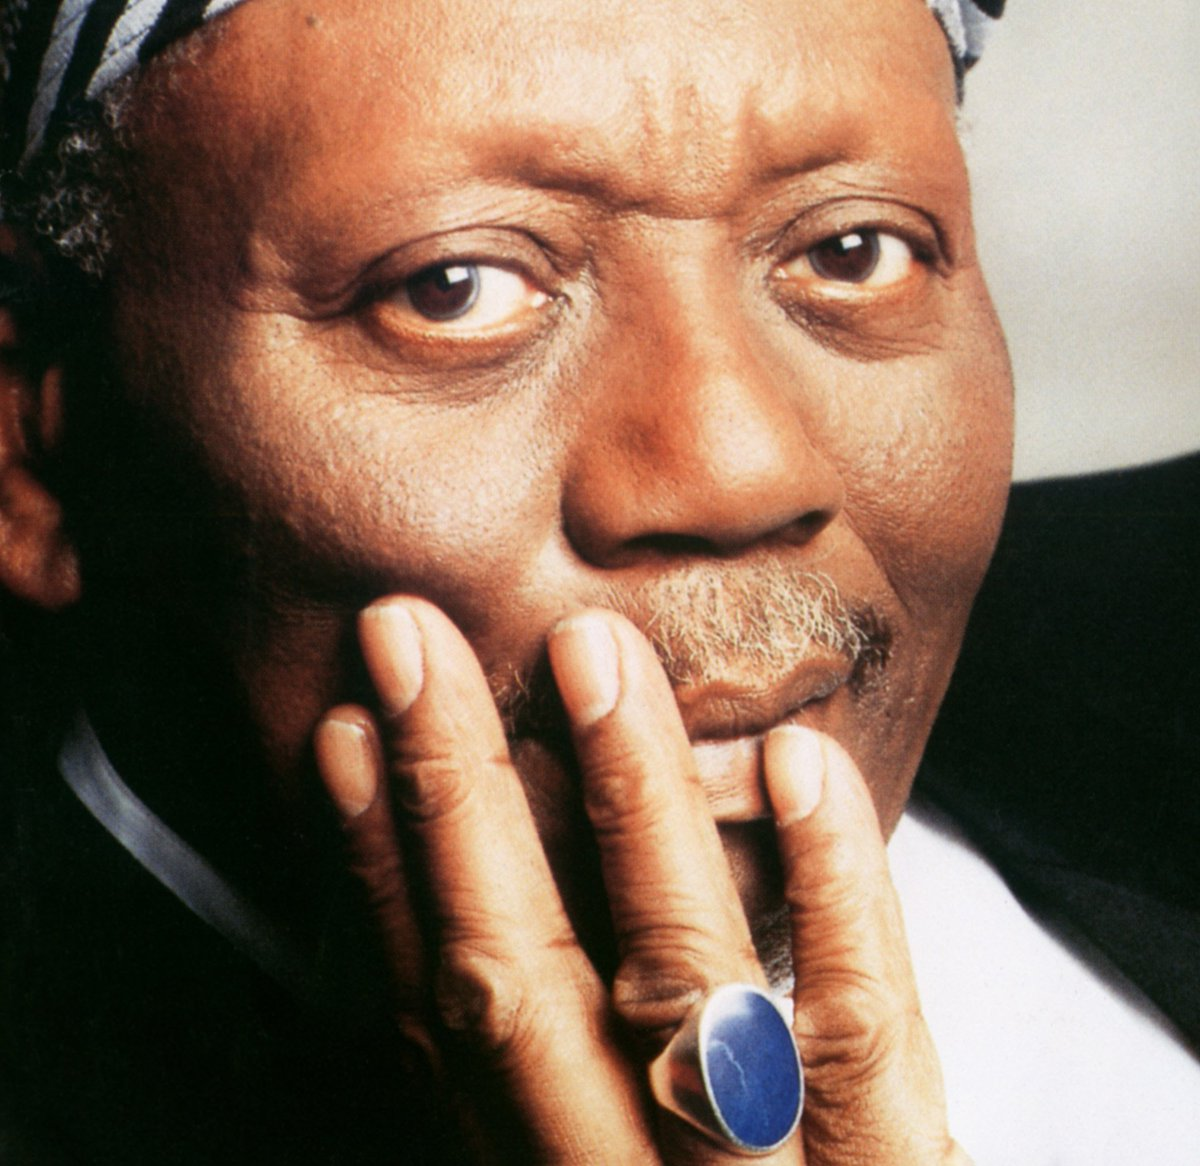 test Twitter Media - Celebrate Randy Weston's 91st birthday at @JazzStandardNYC next week! https://t.co/2bbxkP0Ryz https://t.co/Lqwh8m8dcX